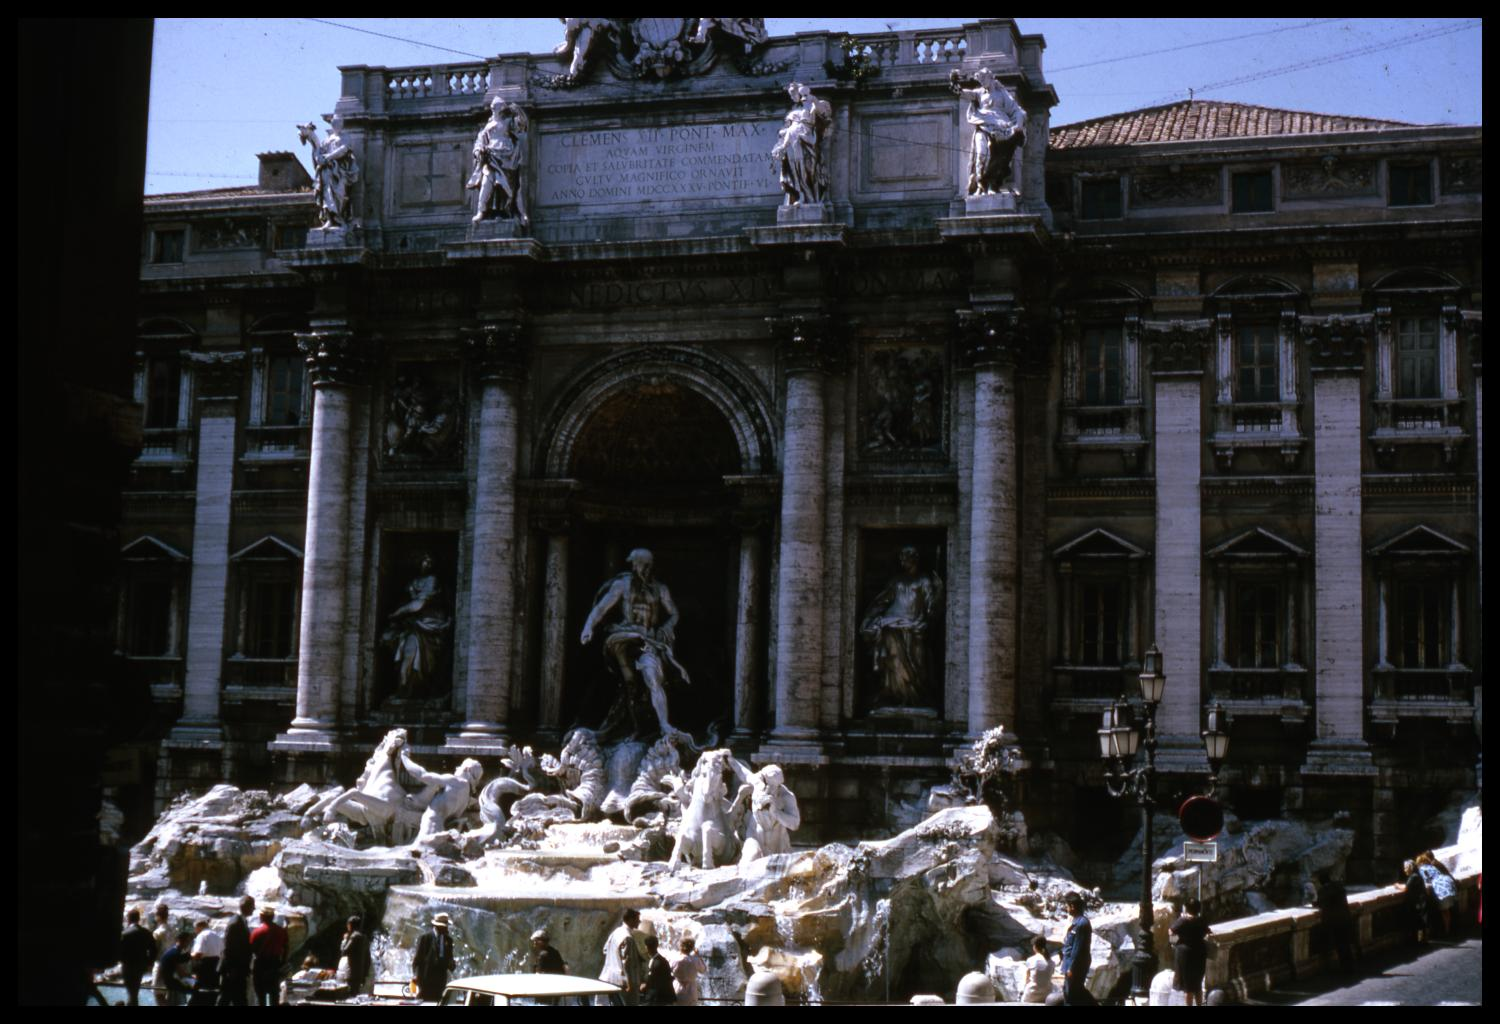 [The Trevi Fountain]                                                                                                      [Sequence #]: 1 of 1